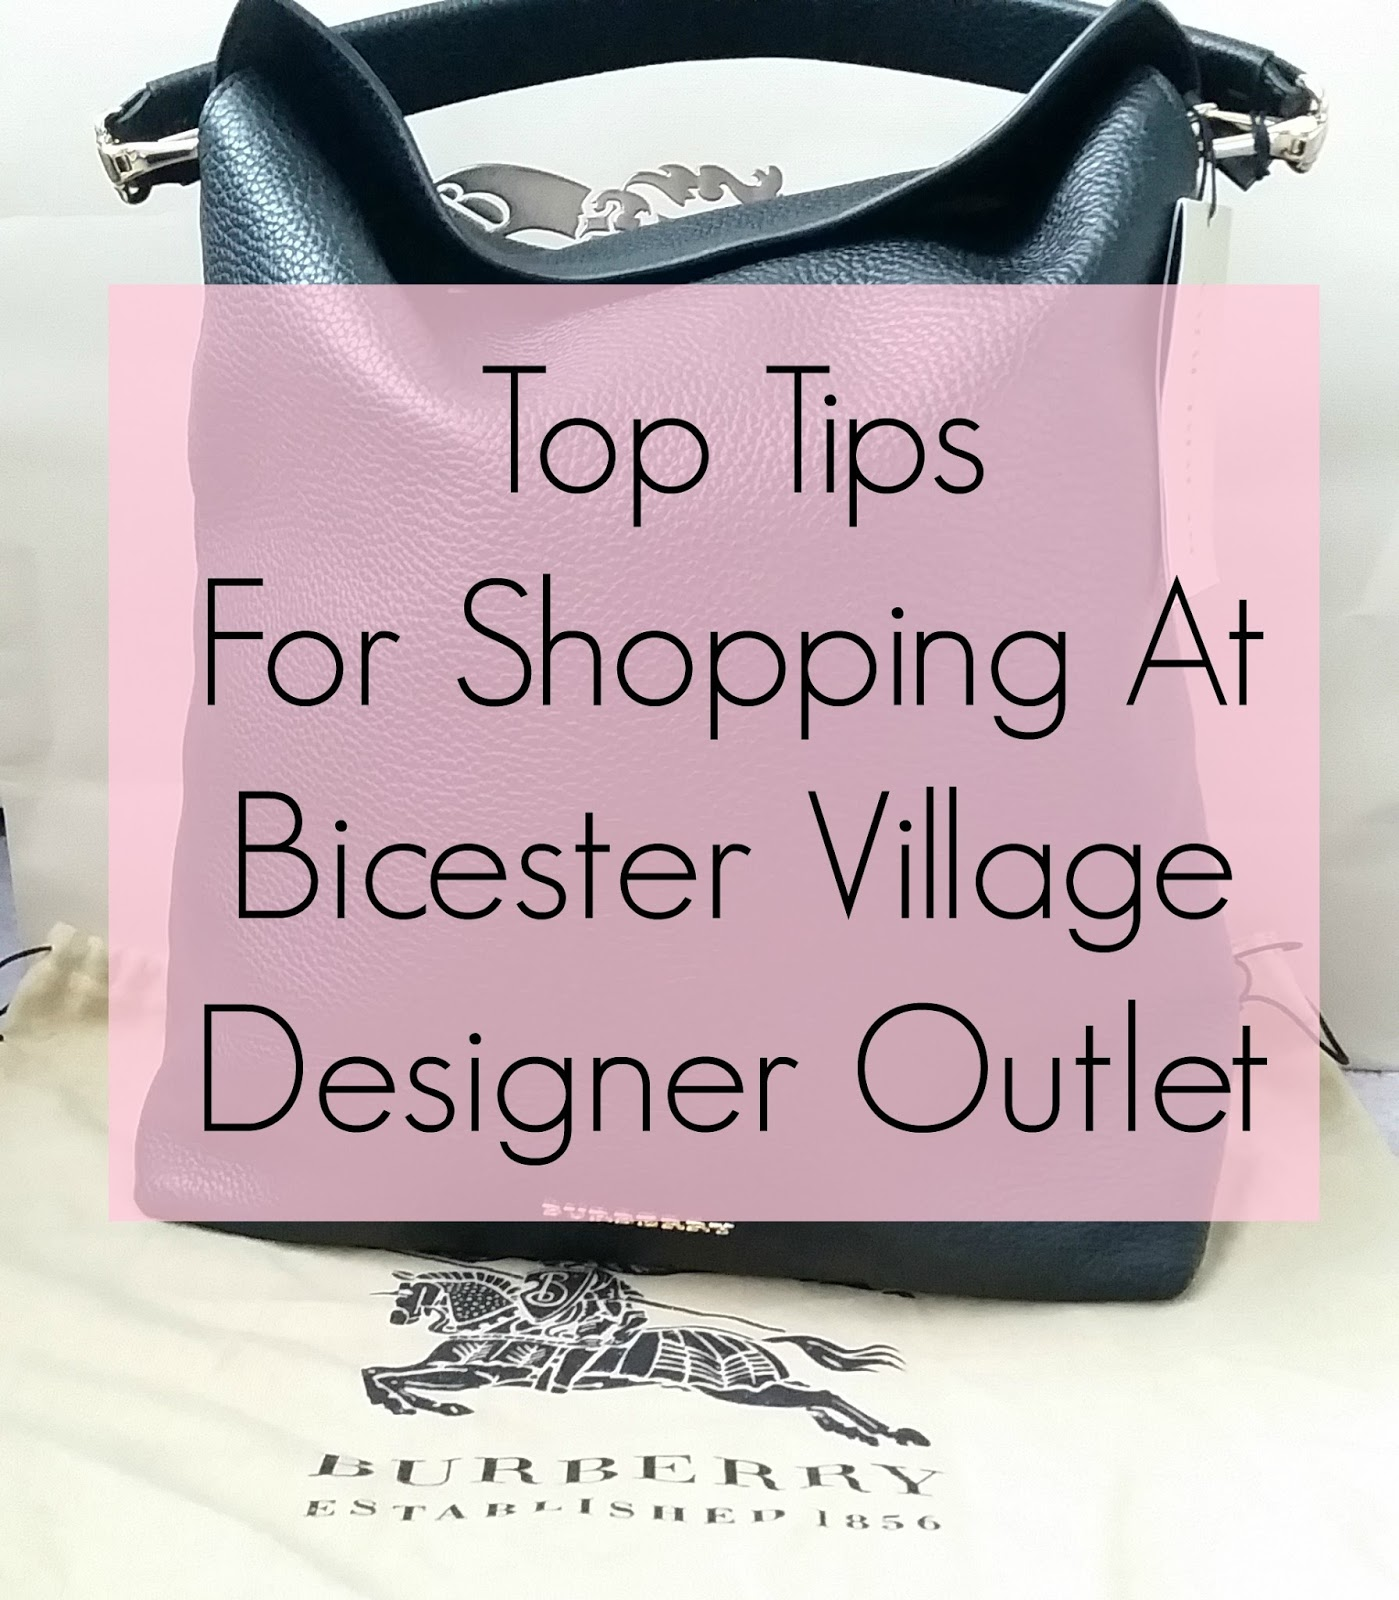 Bicester Village shopping tips